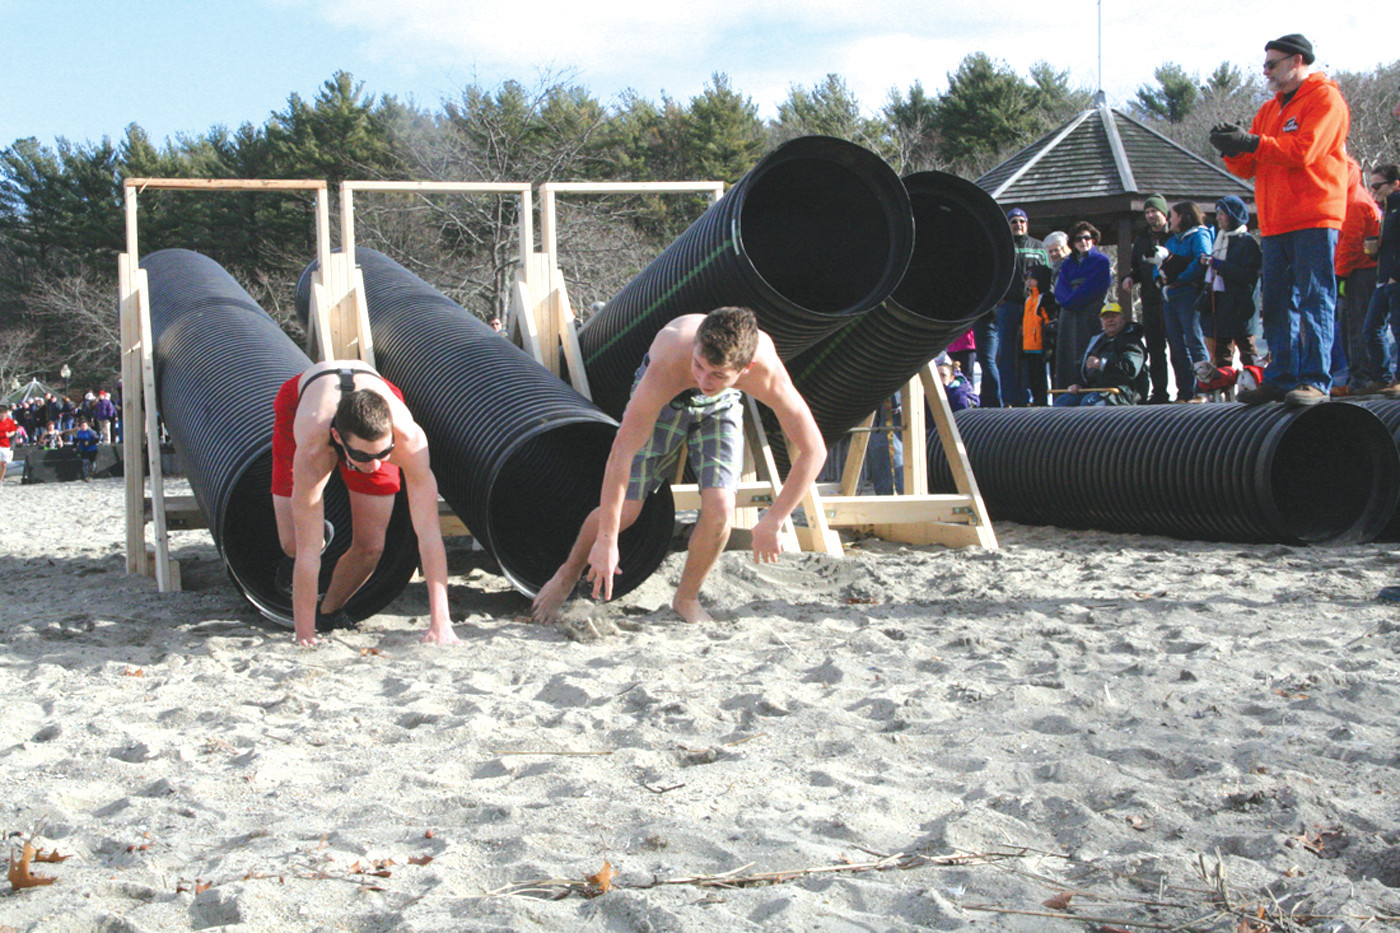 NEW YEAR: Participants in the obstaplunge navigate the teeter-totter at the Frozen Clam Dip to benefit the Rhode Island Mentoring Partnership held at Goddard Park this year. Lynn Hall from BoldRDash debuted the tunnel obstacle at the event.